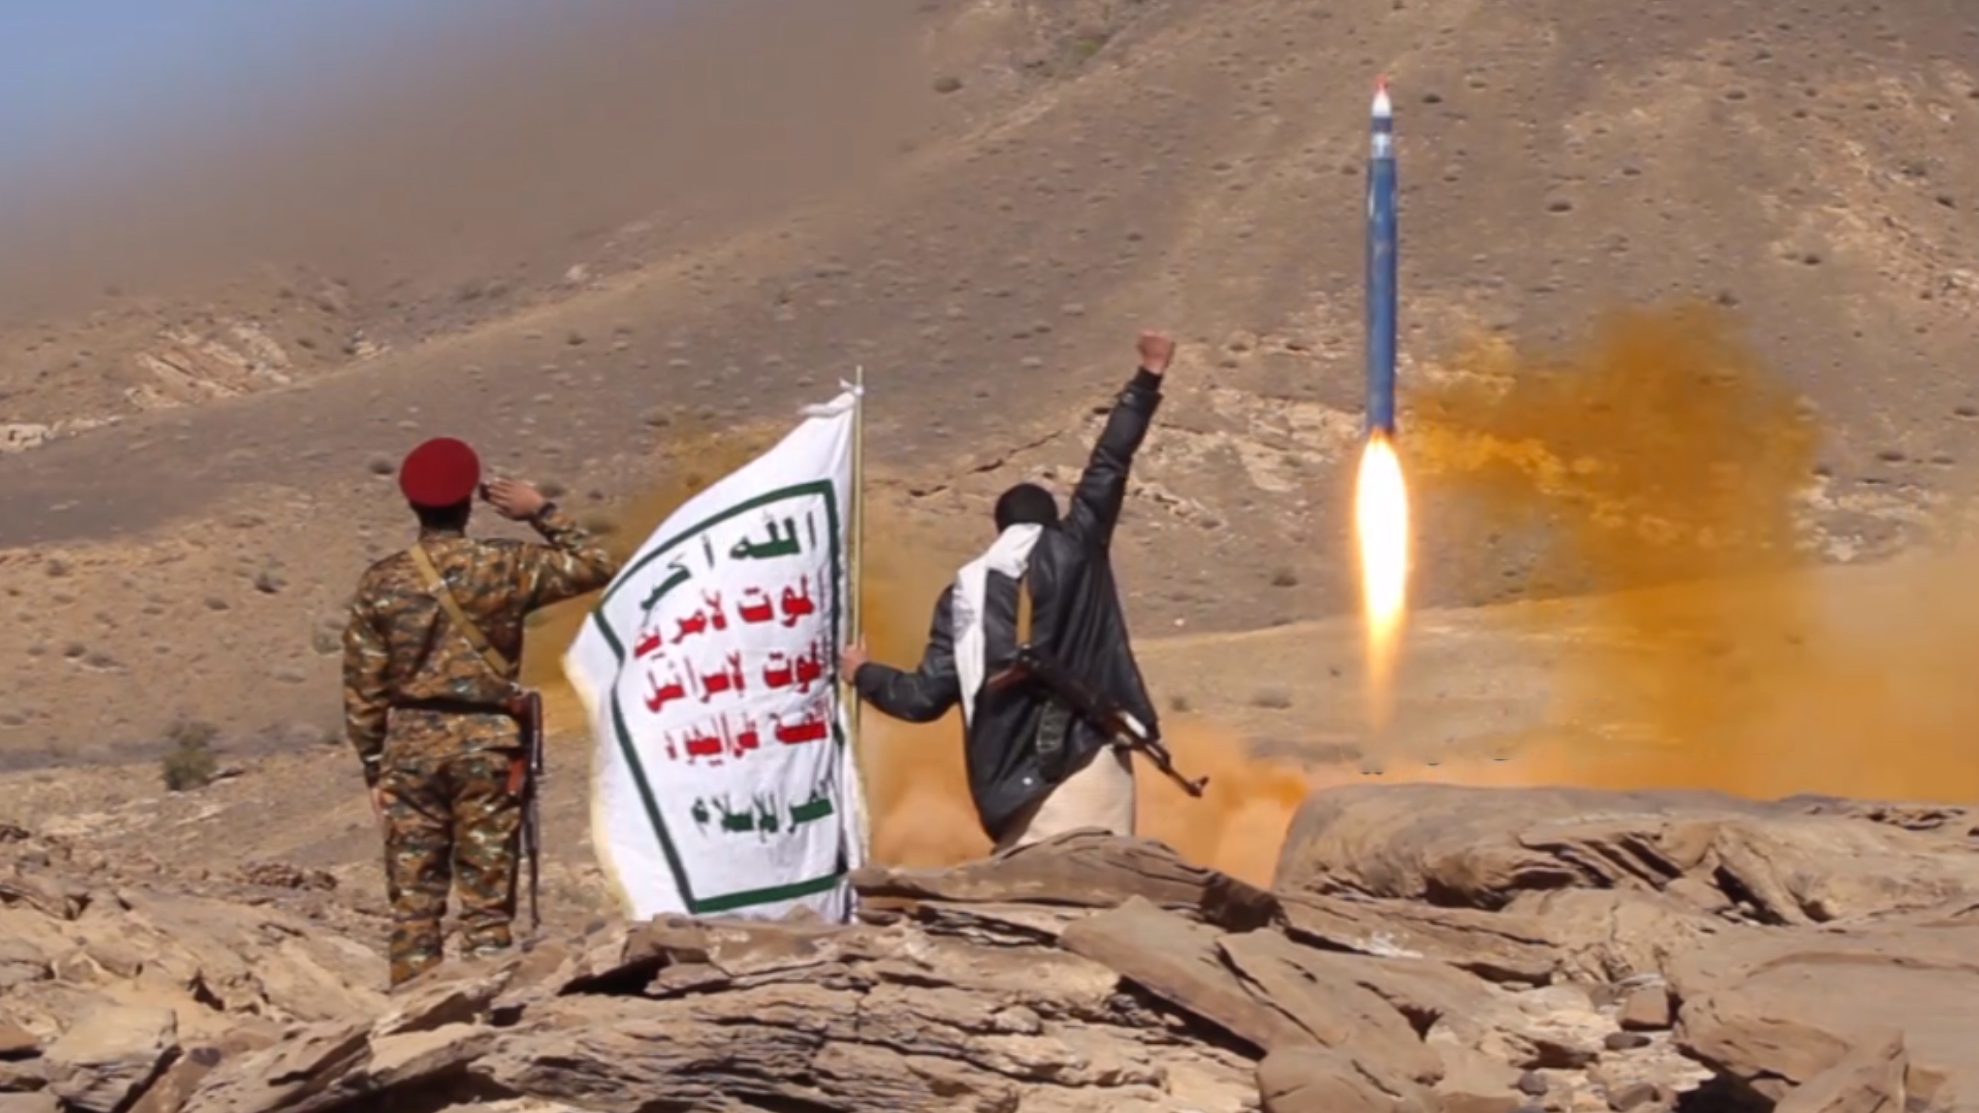 Houthis' Defense Minister Vows To Attack Israeli Military Targets